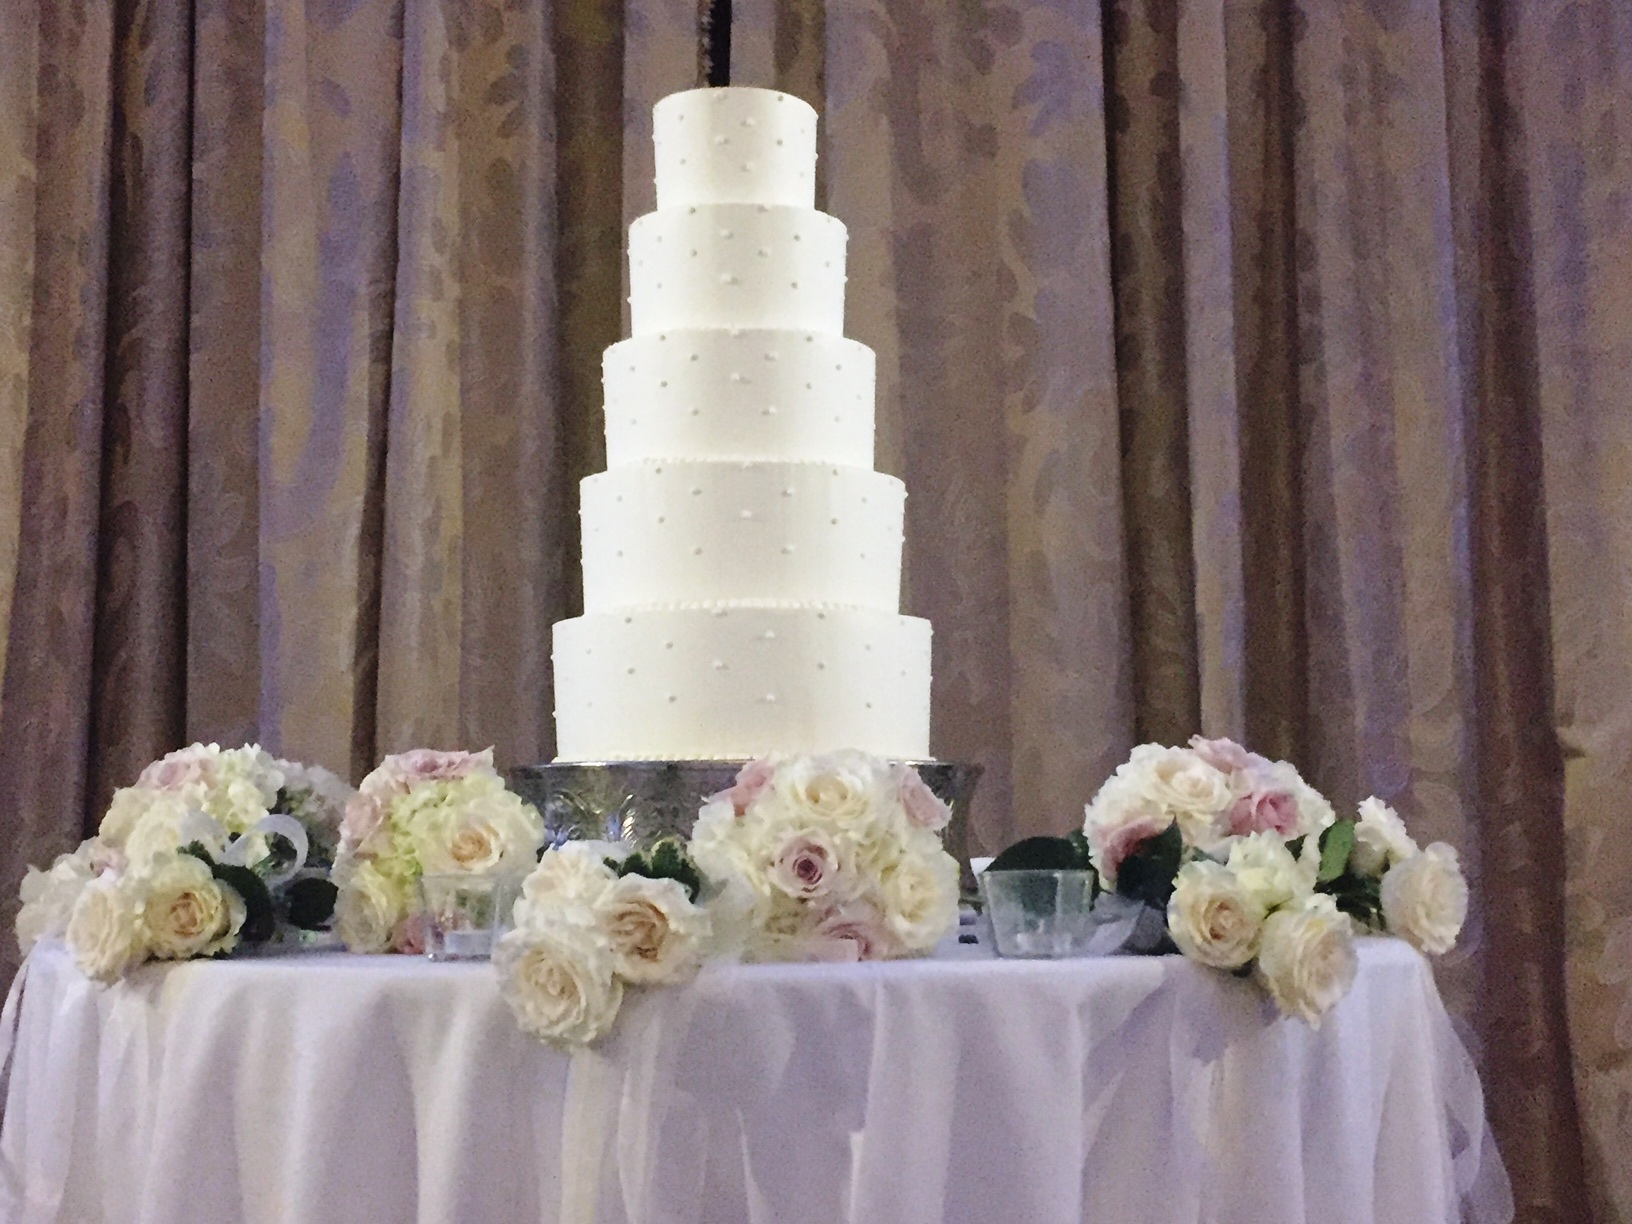 Wedding Cake with Flowers at the Base